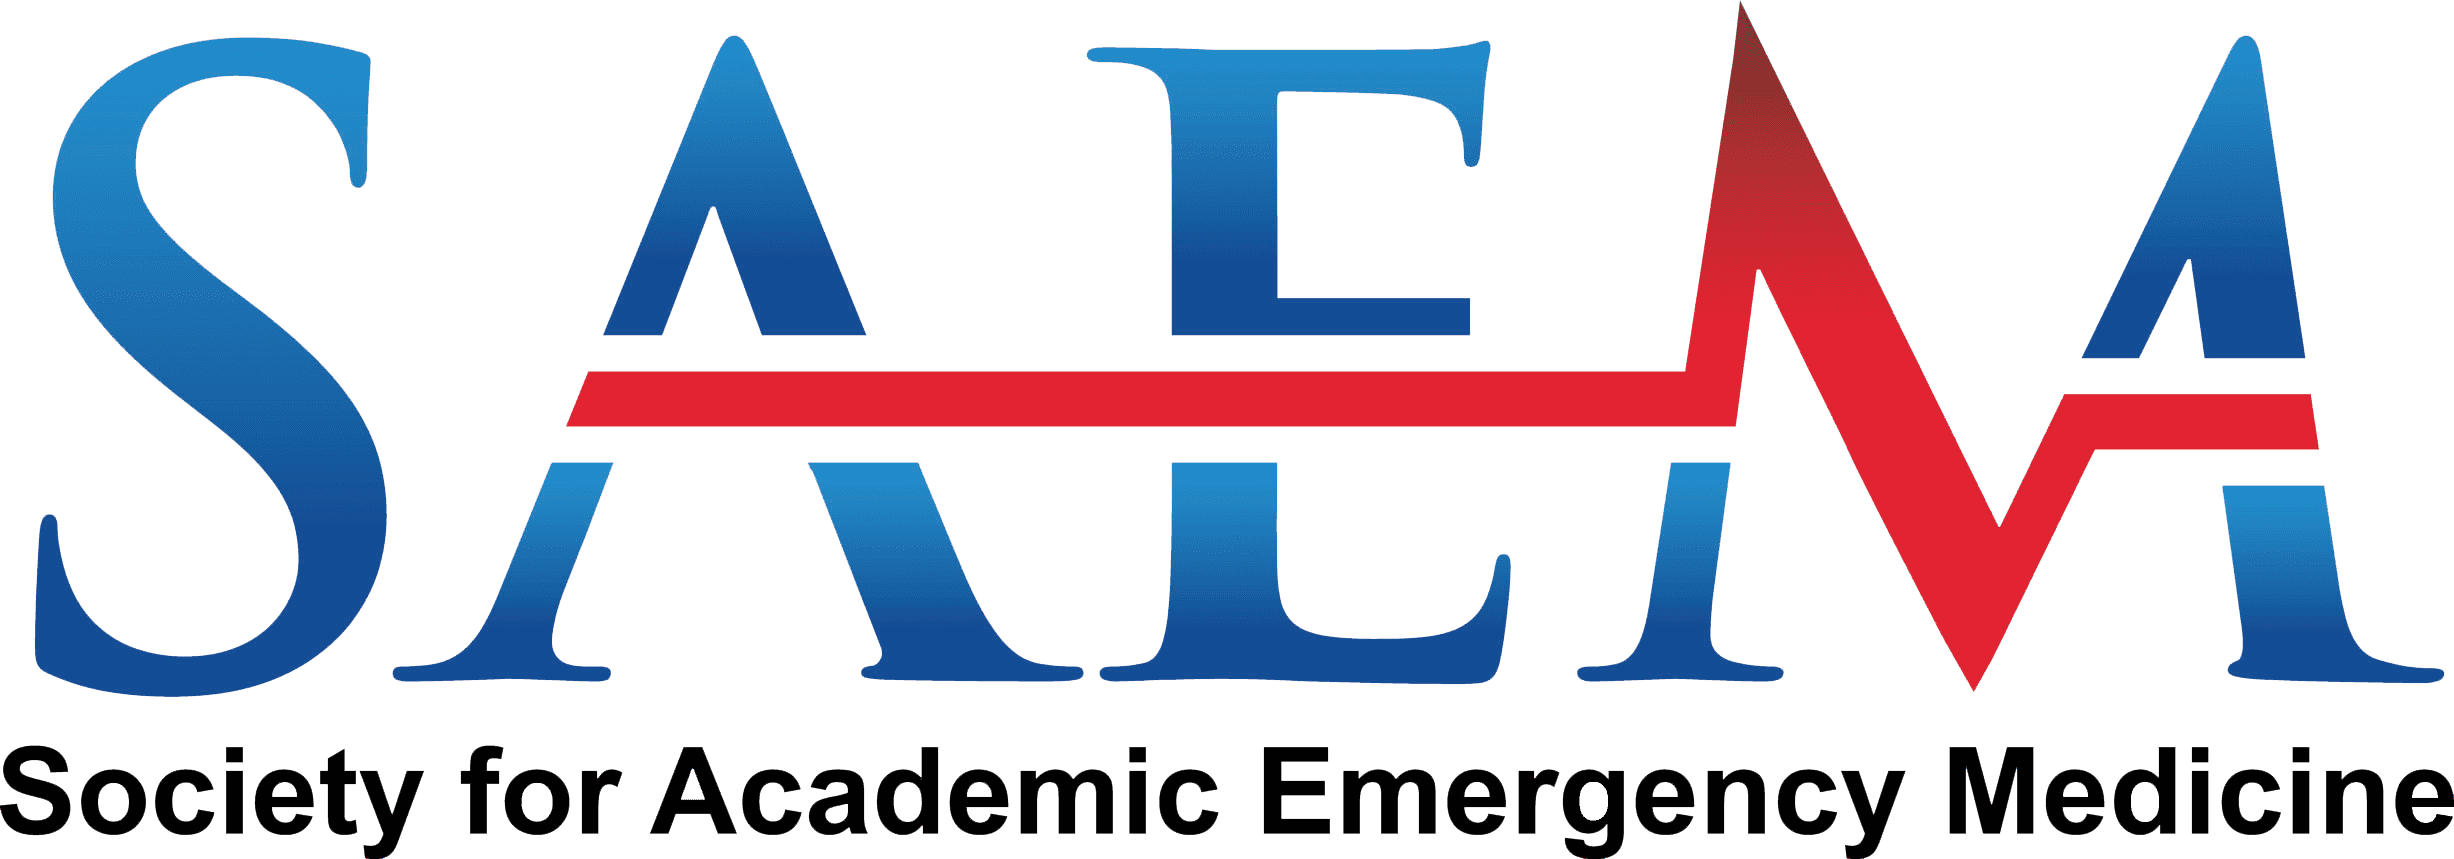 Society for Academic Emergency Medicine logo